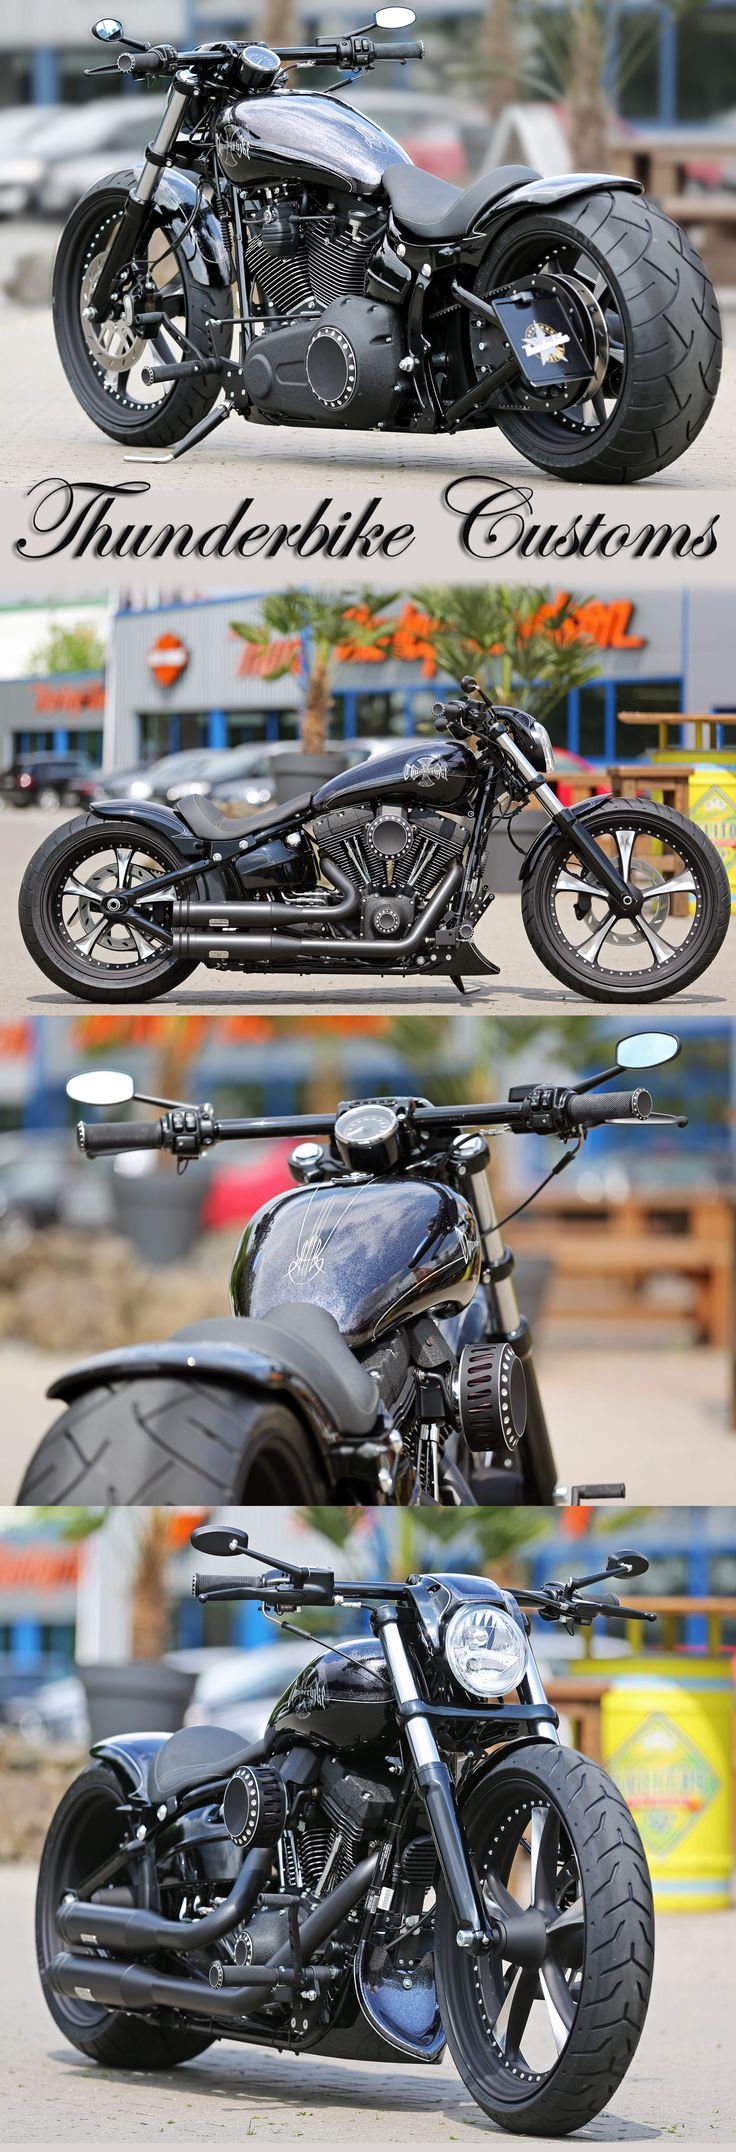 Customized Harley-Davidson Softail Breakout by Thunderbike. For this project we added a long list of our custom parts like the Lowrider wheels, rear-fender Kit, Air-Ride suspension, custom tank, forward controls and much more.